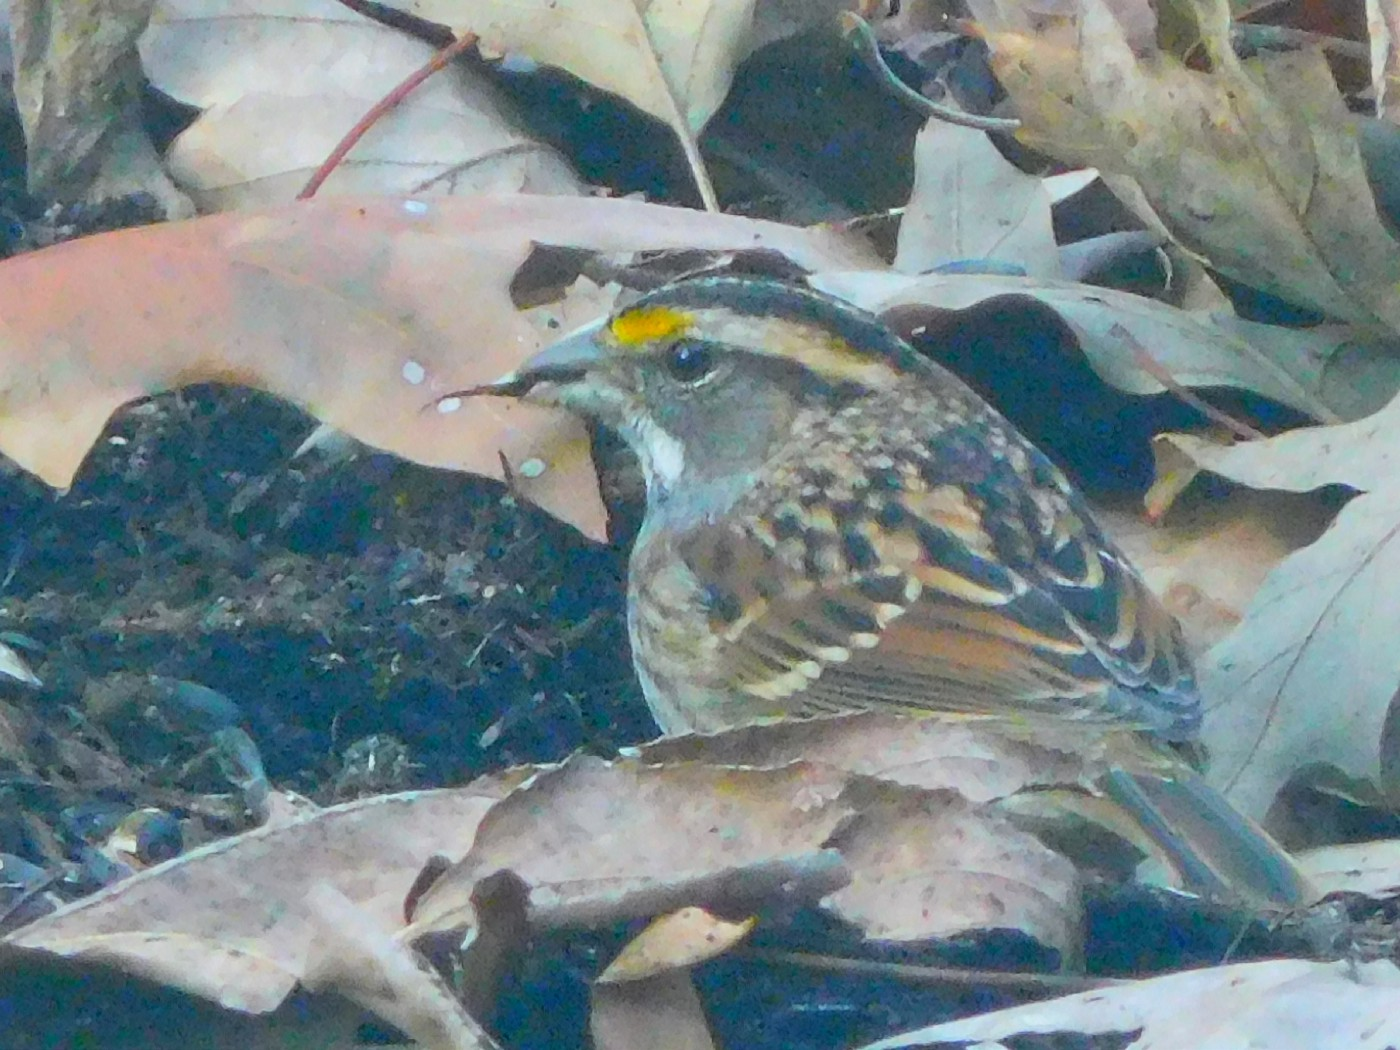 photograph of a sparrow with a bright yellow stripe on its head